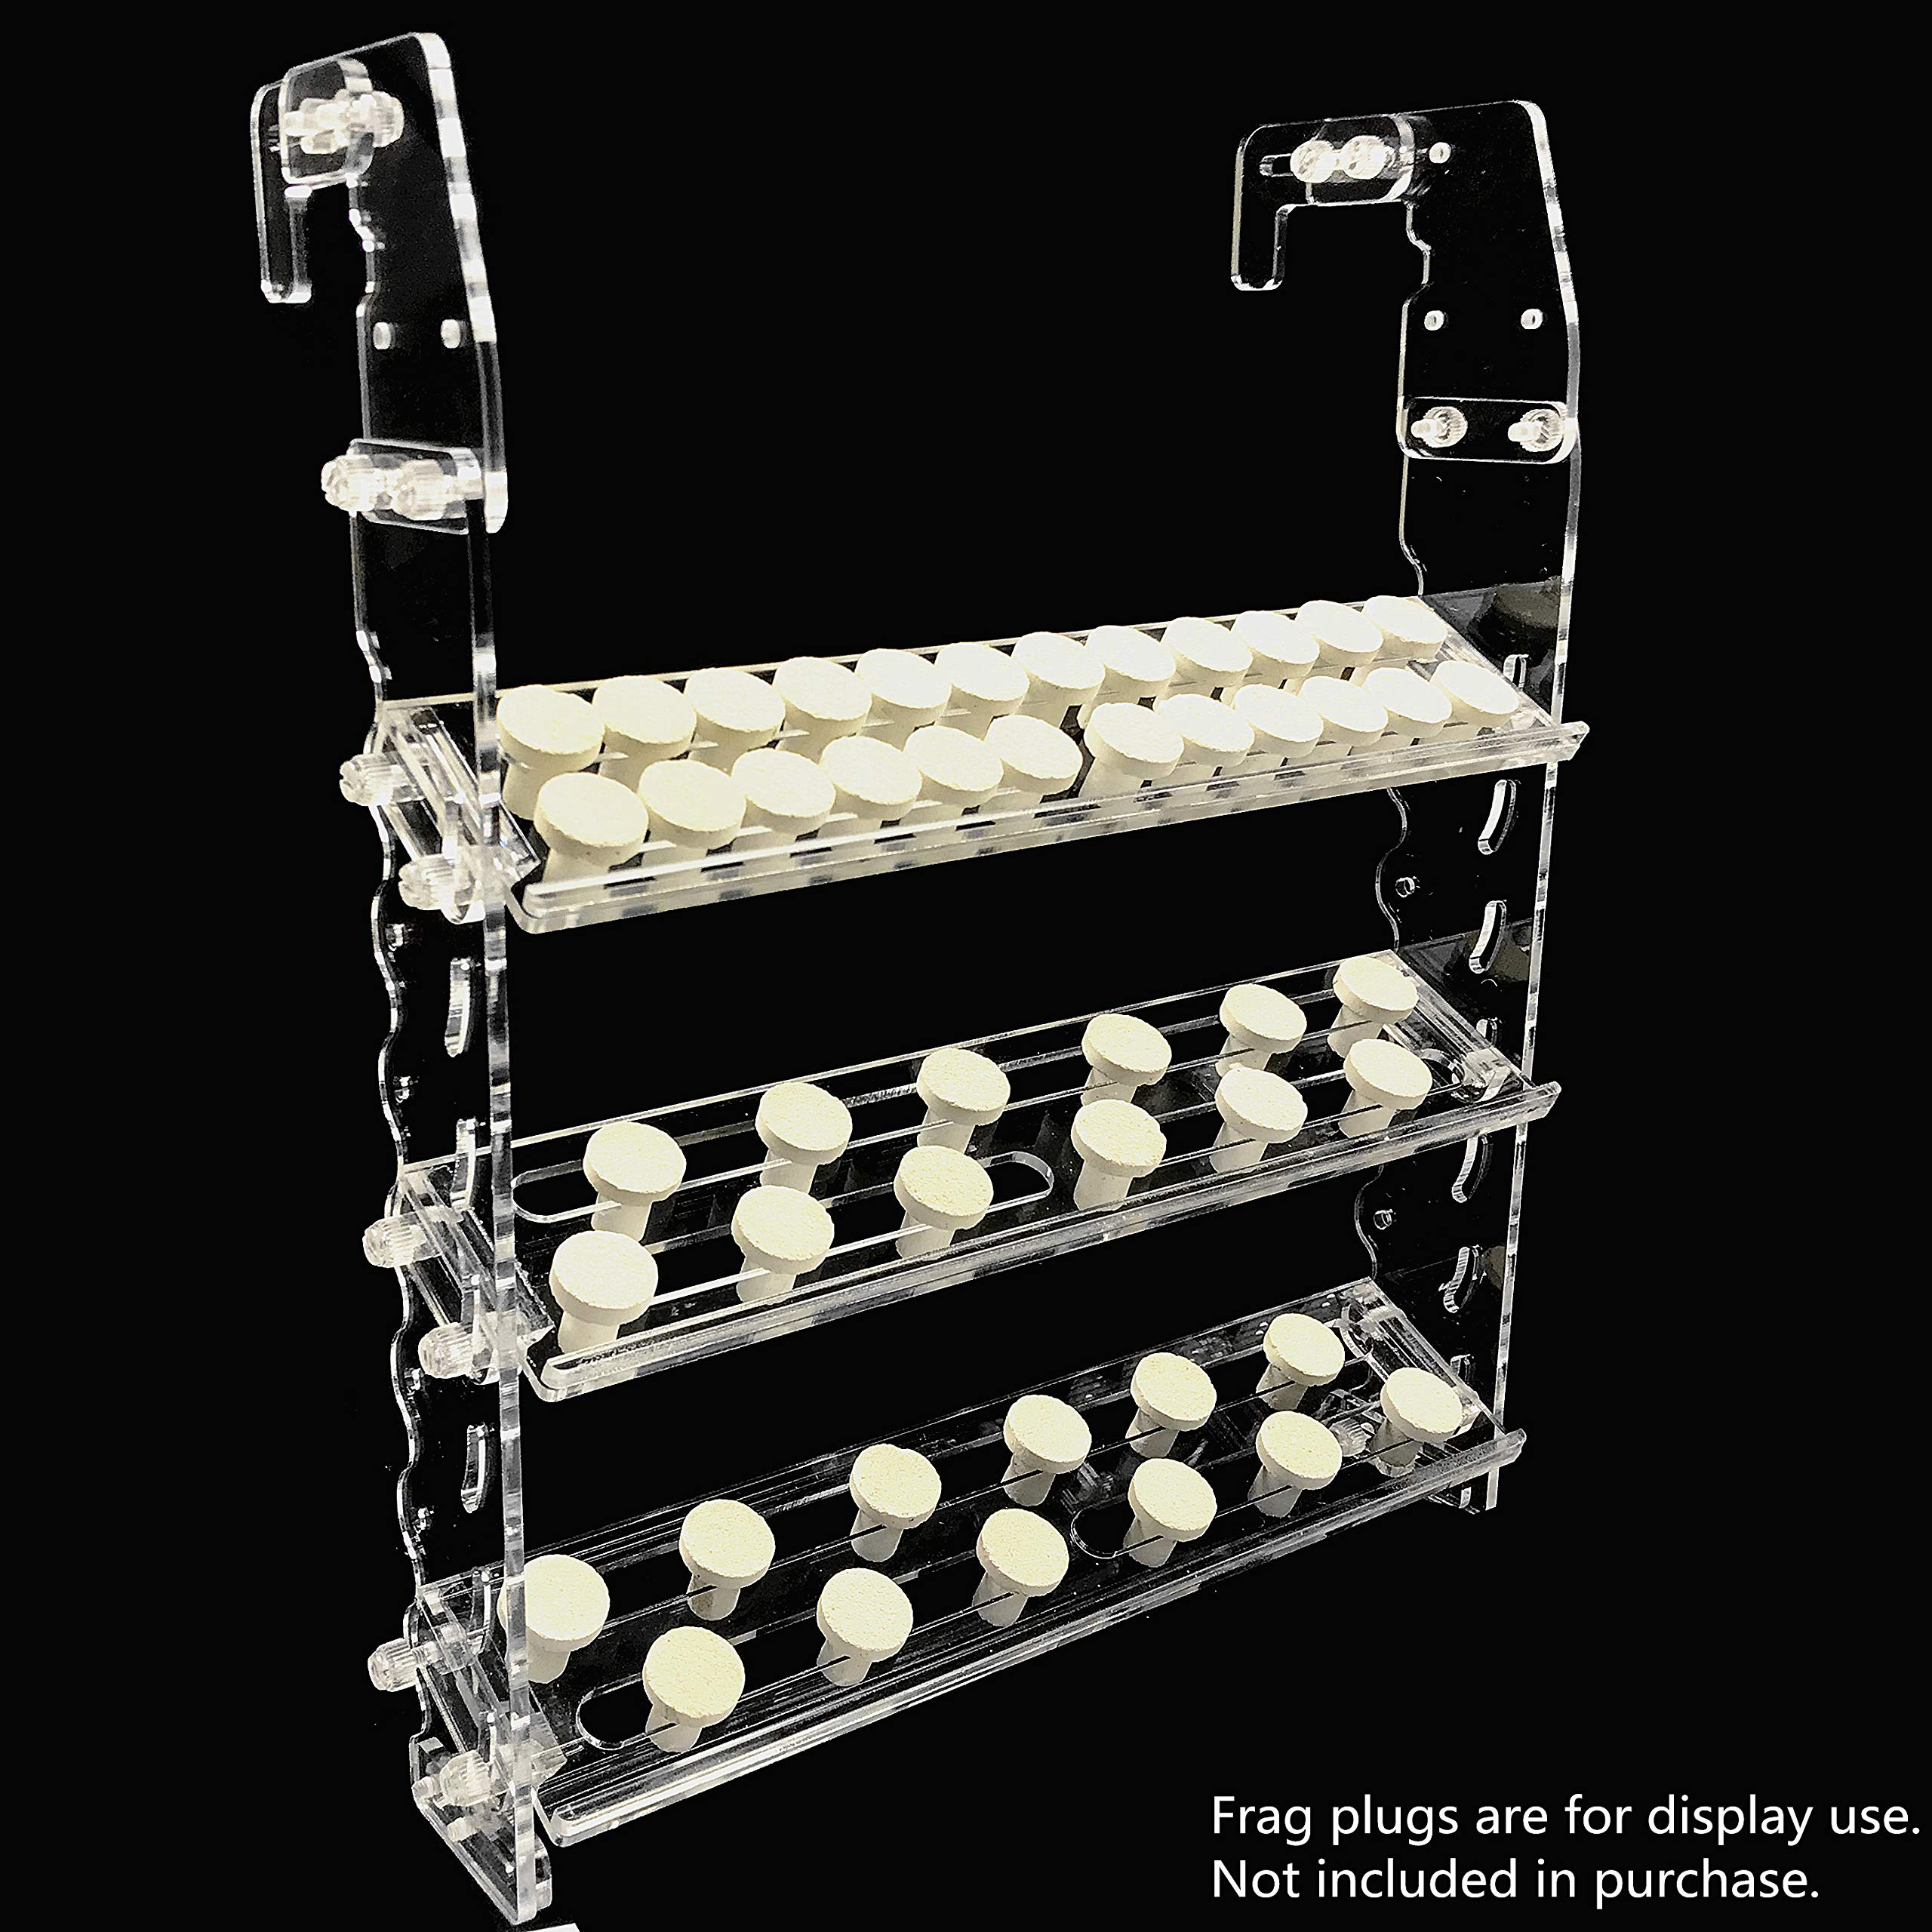 Reefing Art Vertical Frag Rack Holds up to 84 Coral frag Plugs Hang on Back (Large) by Reefing Art